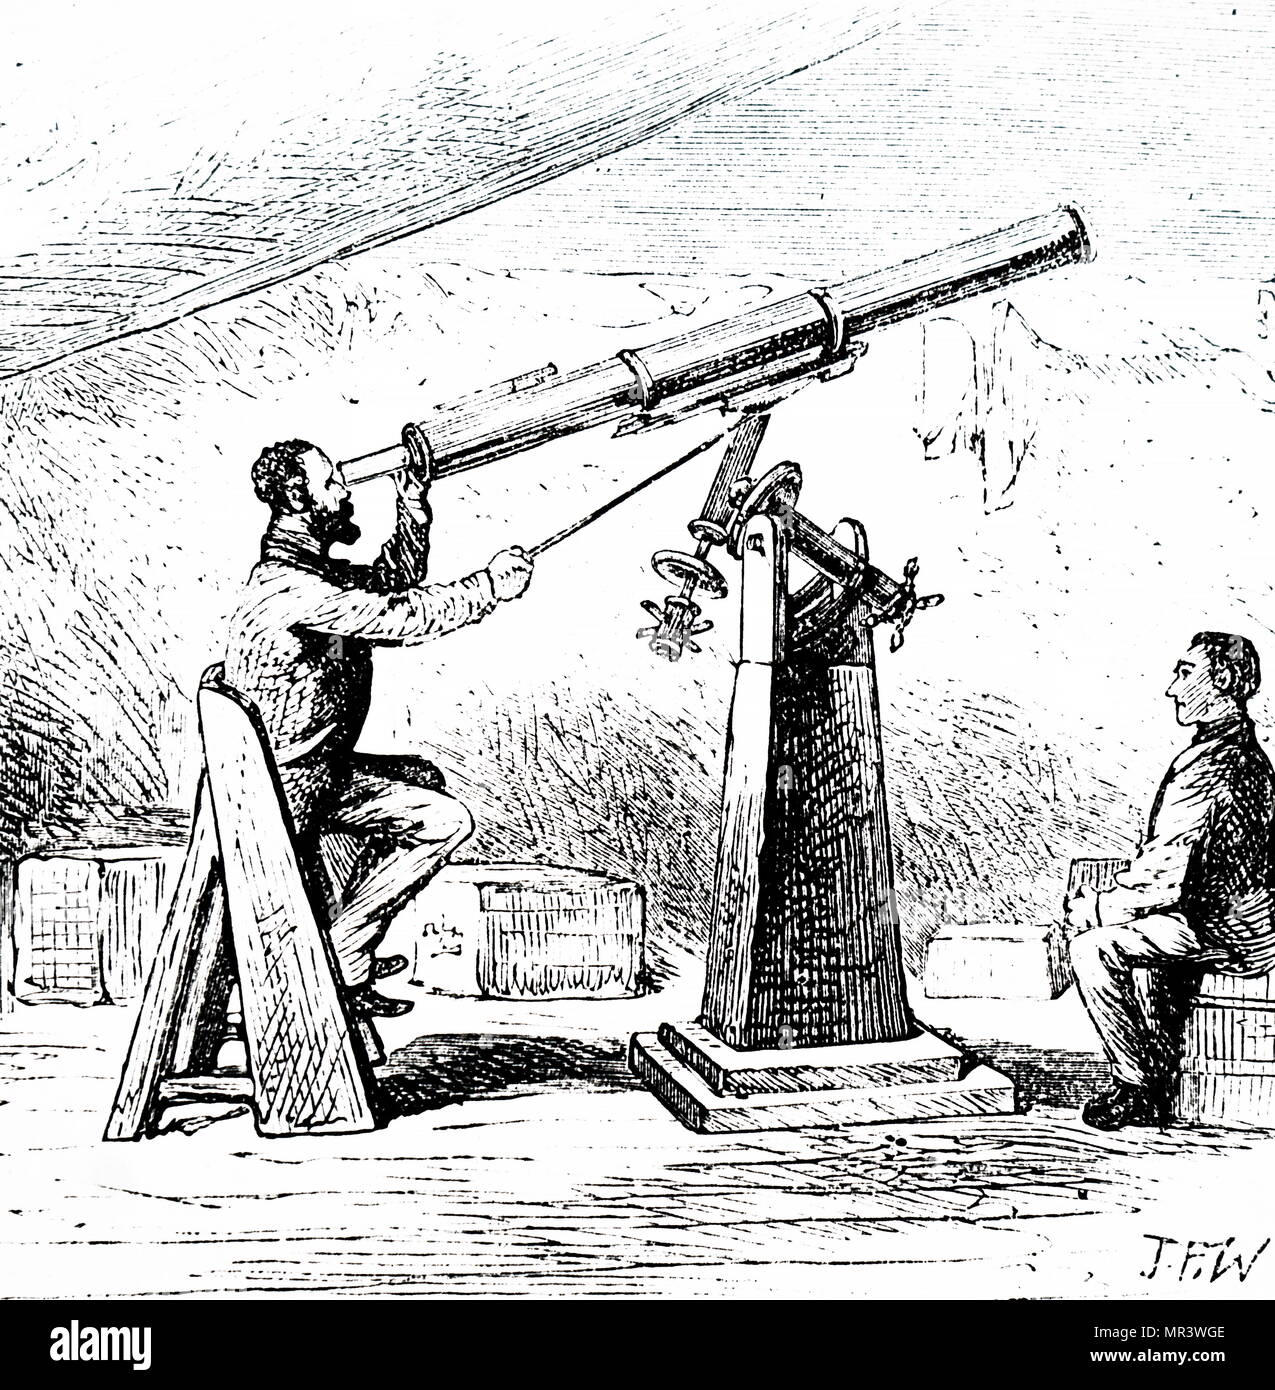 Illustration depicting an expedition to observe the transit of Venus on Kerguelen Island. 19th century - Stock Image